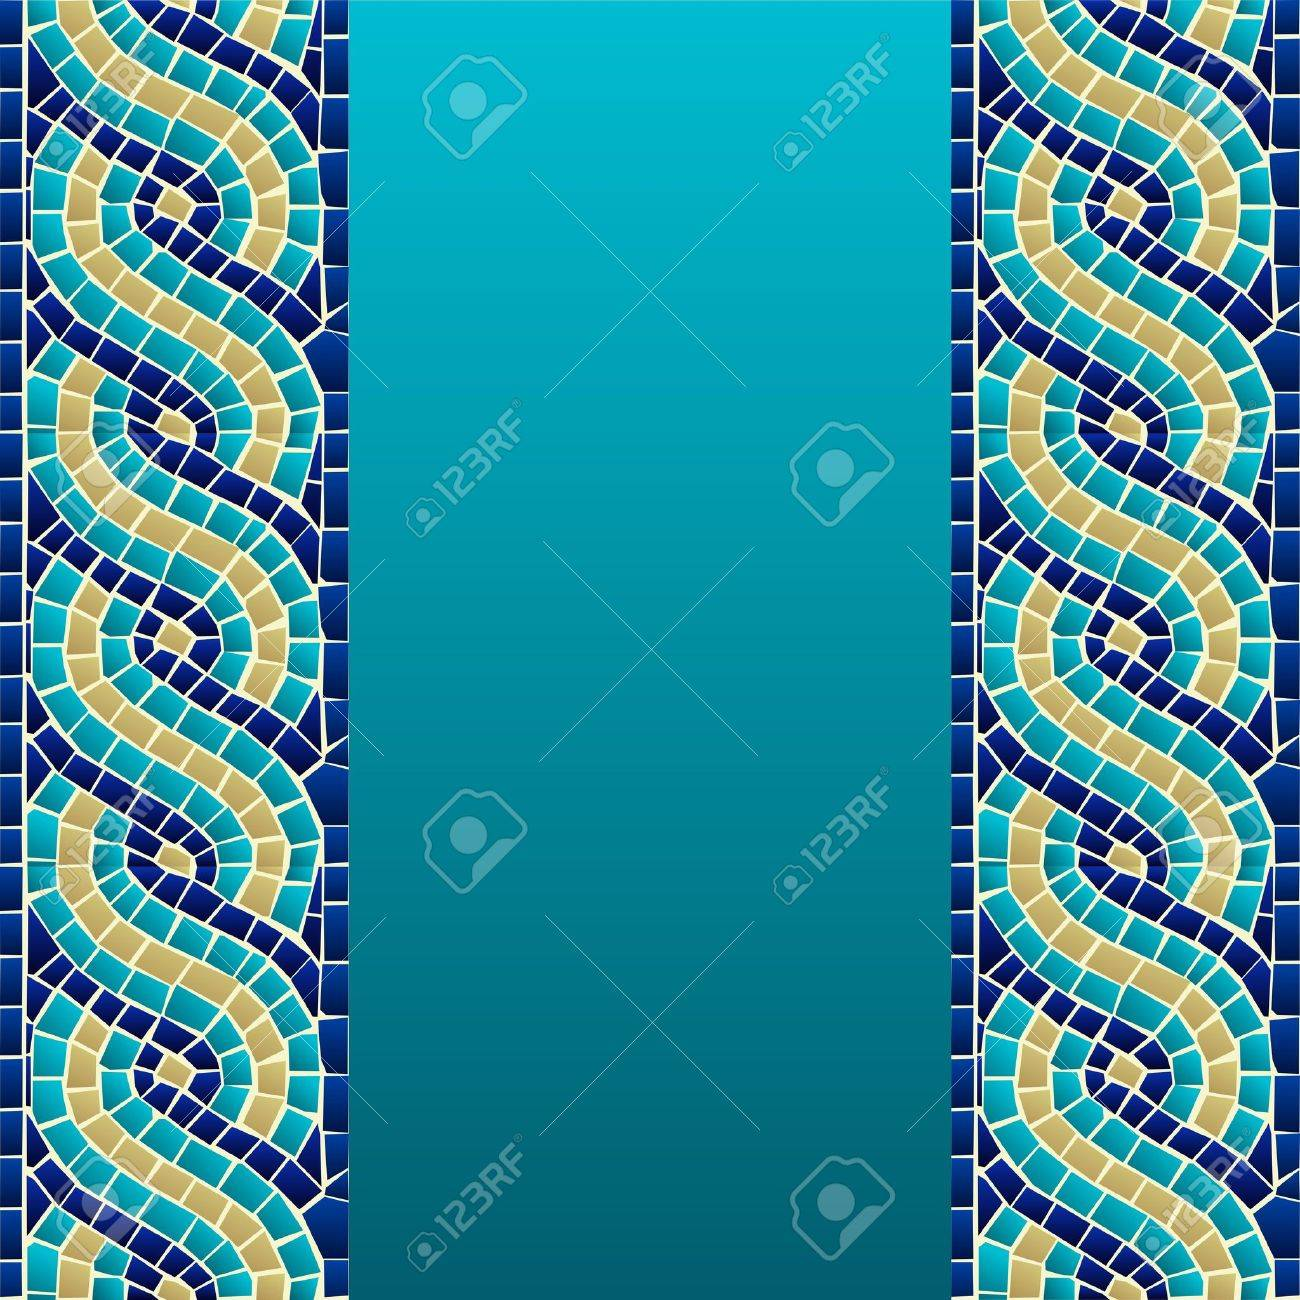 Marine style wave mosaic seamless pattern background  Vector file layered for easy manipulation and custom coloring Stock Vector - 14255876